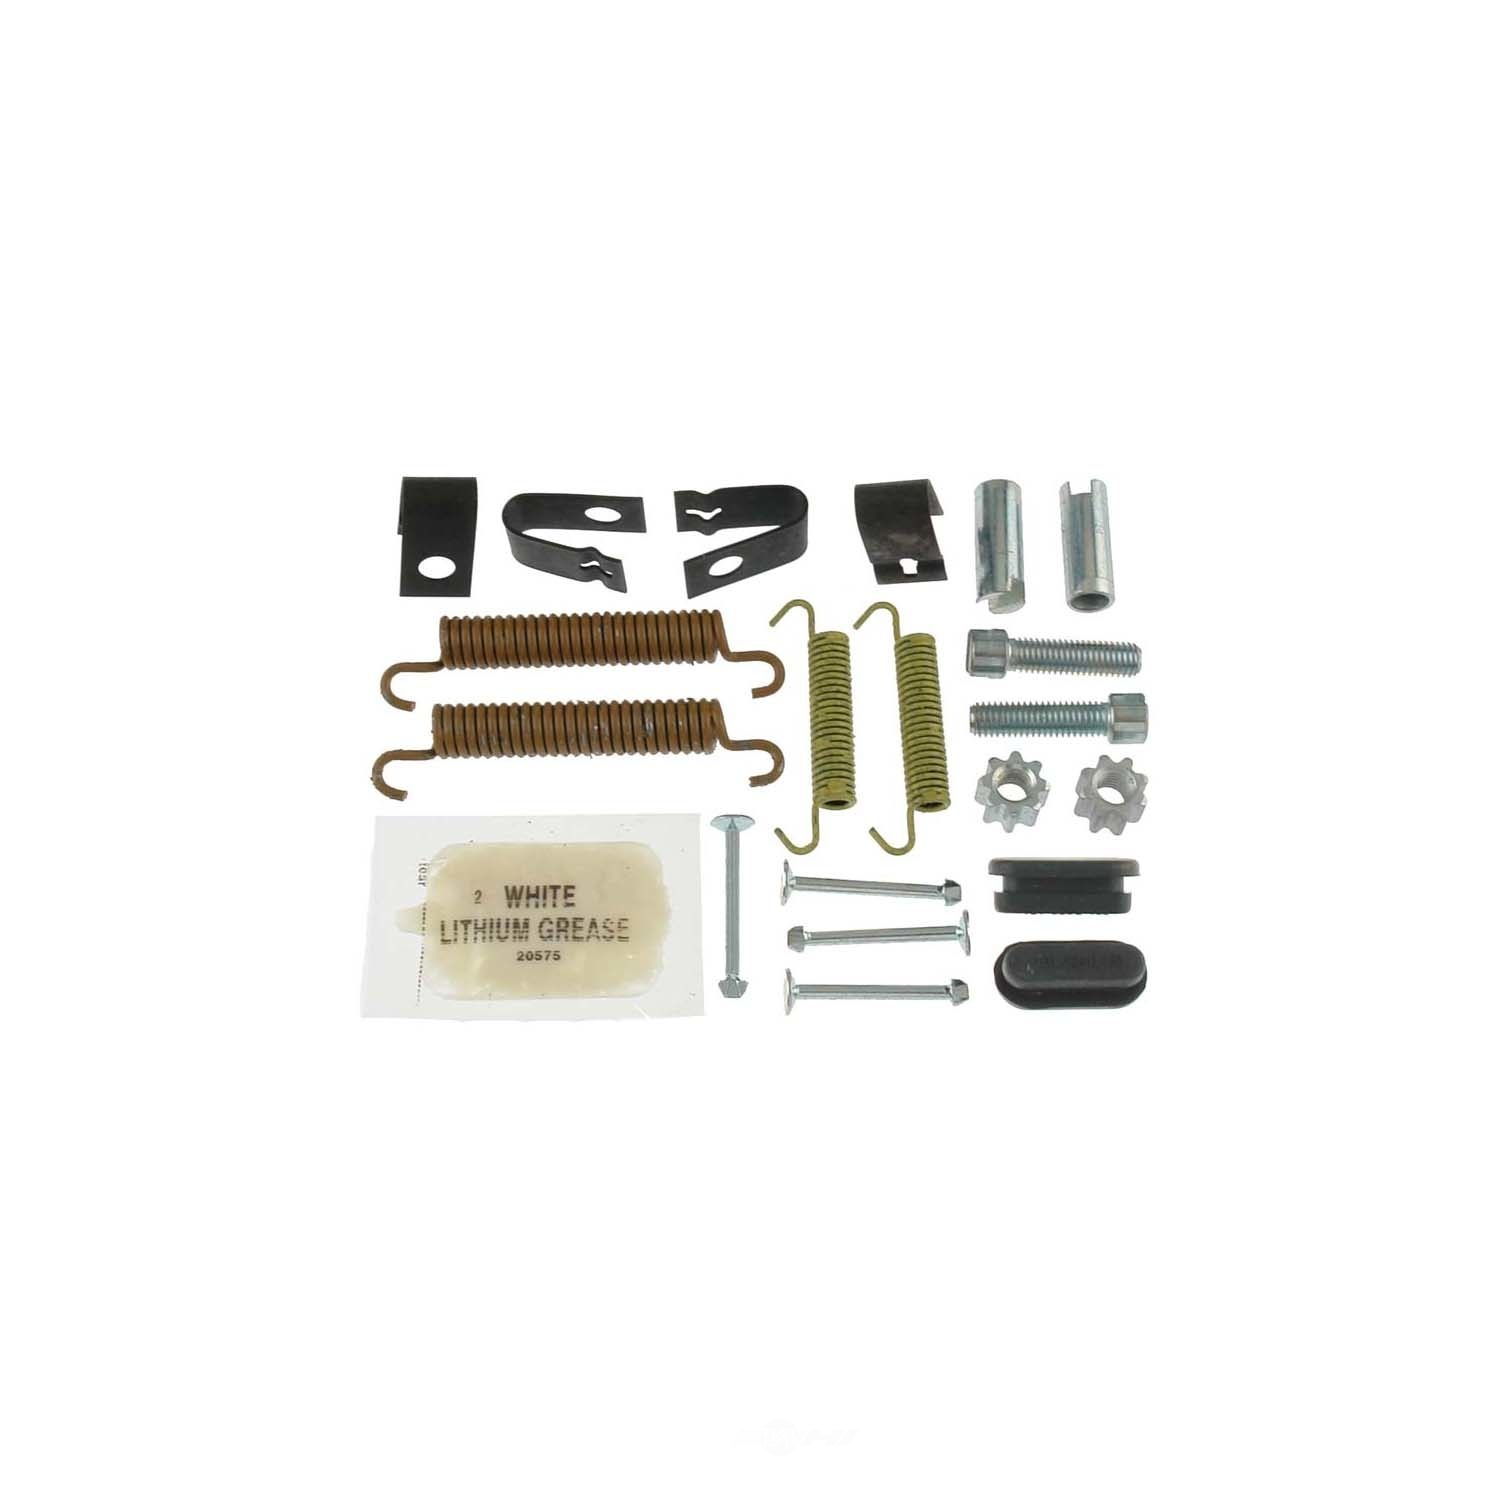 CARLSON QUALITY BRAKE PARTS - Parking Brake Hardware Kit (Rear) - CRL H7300